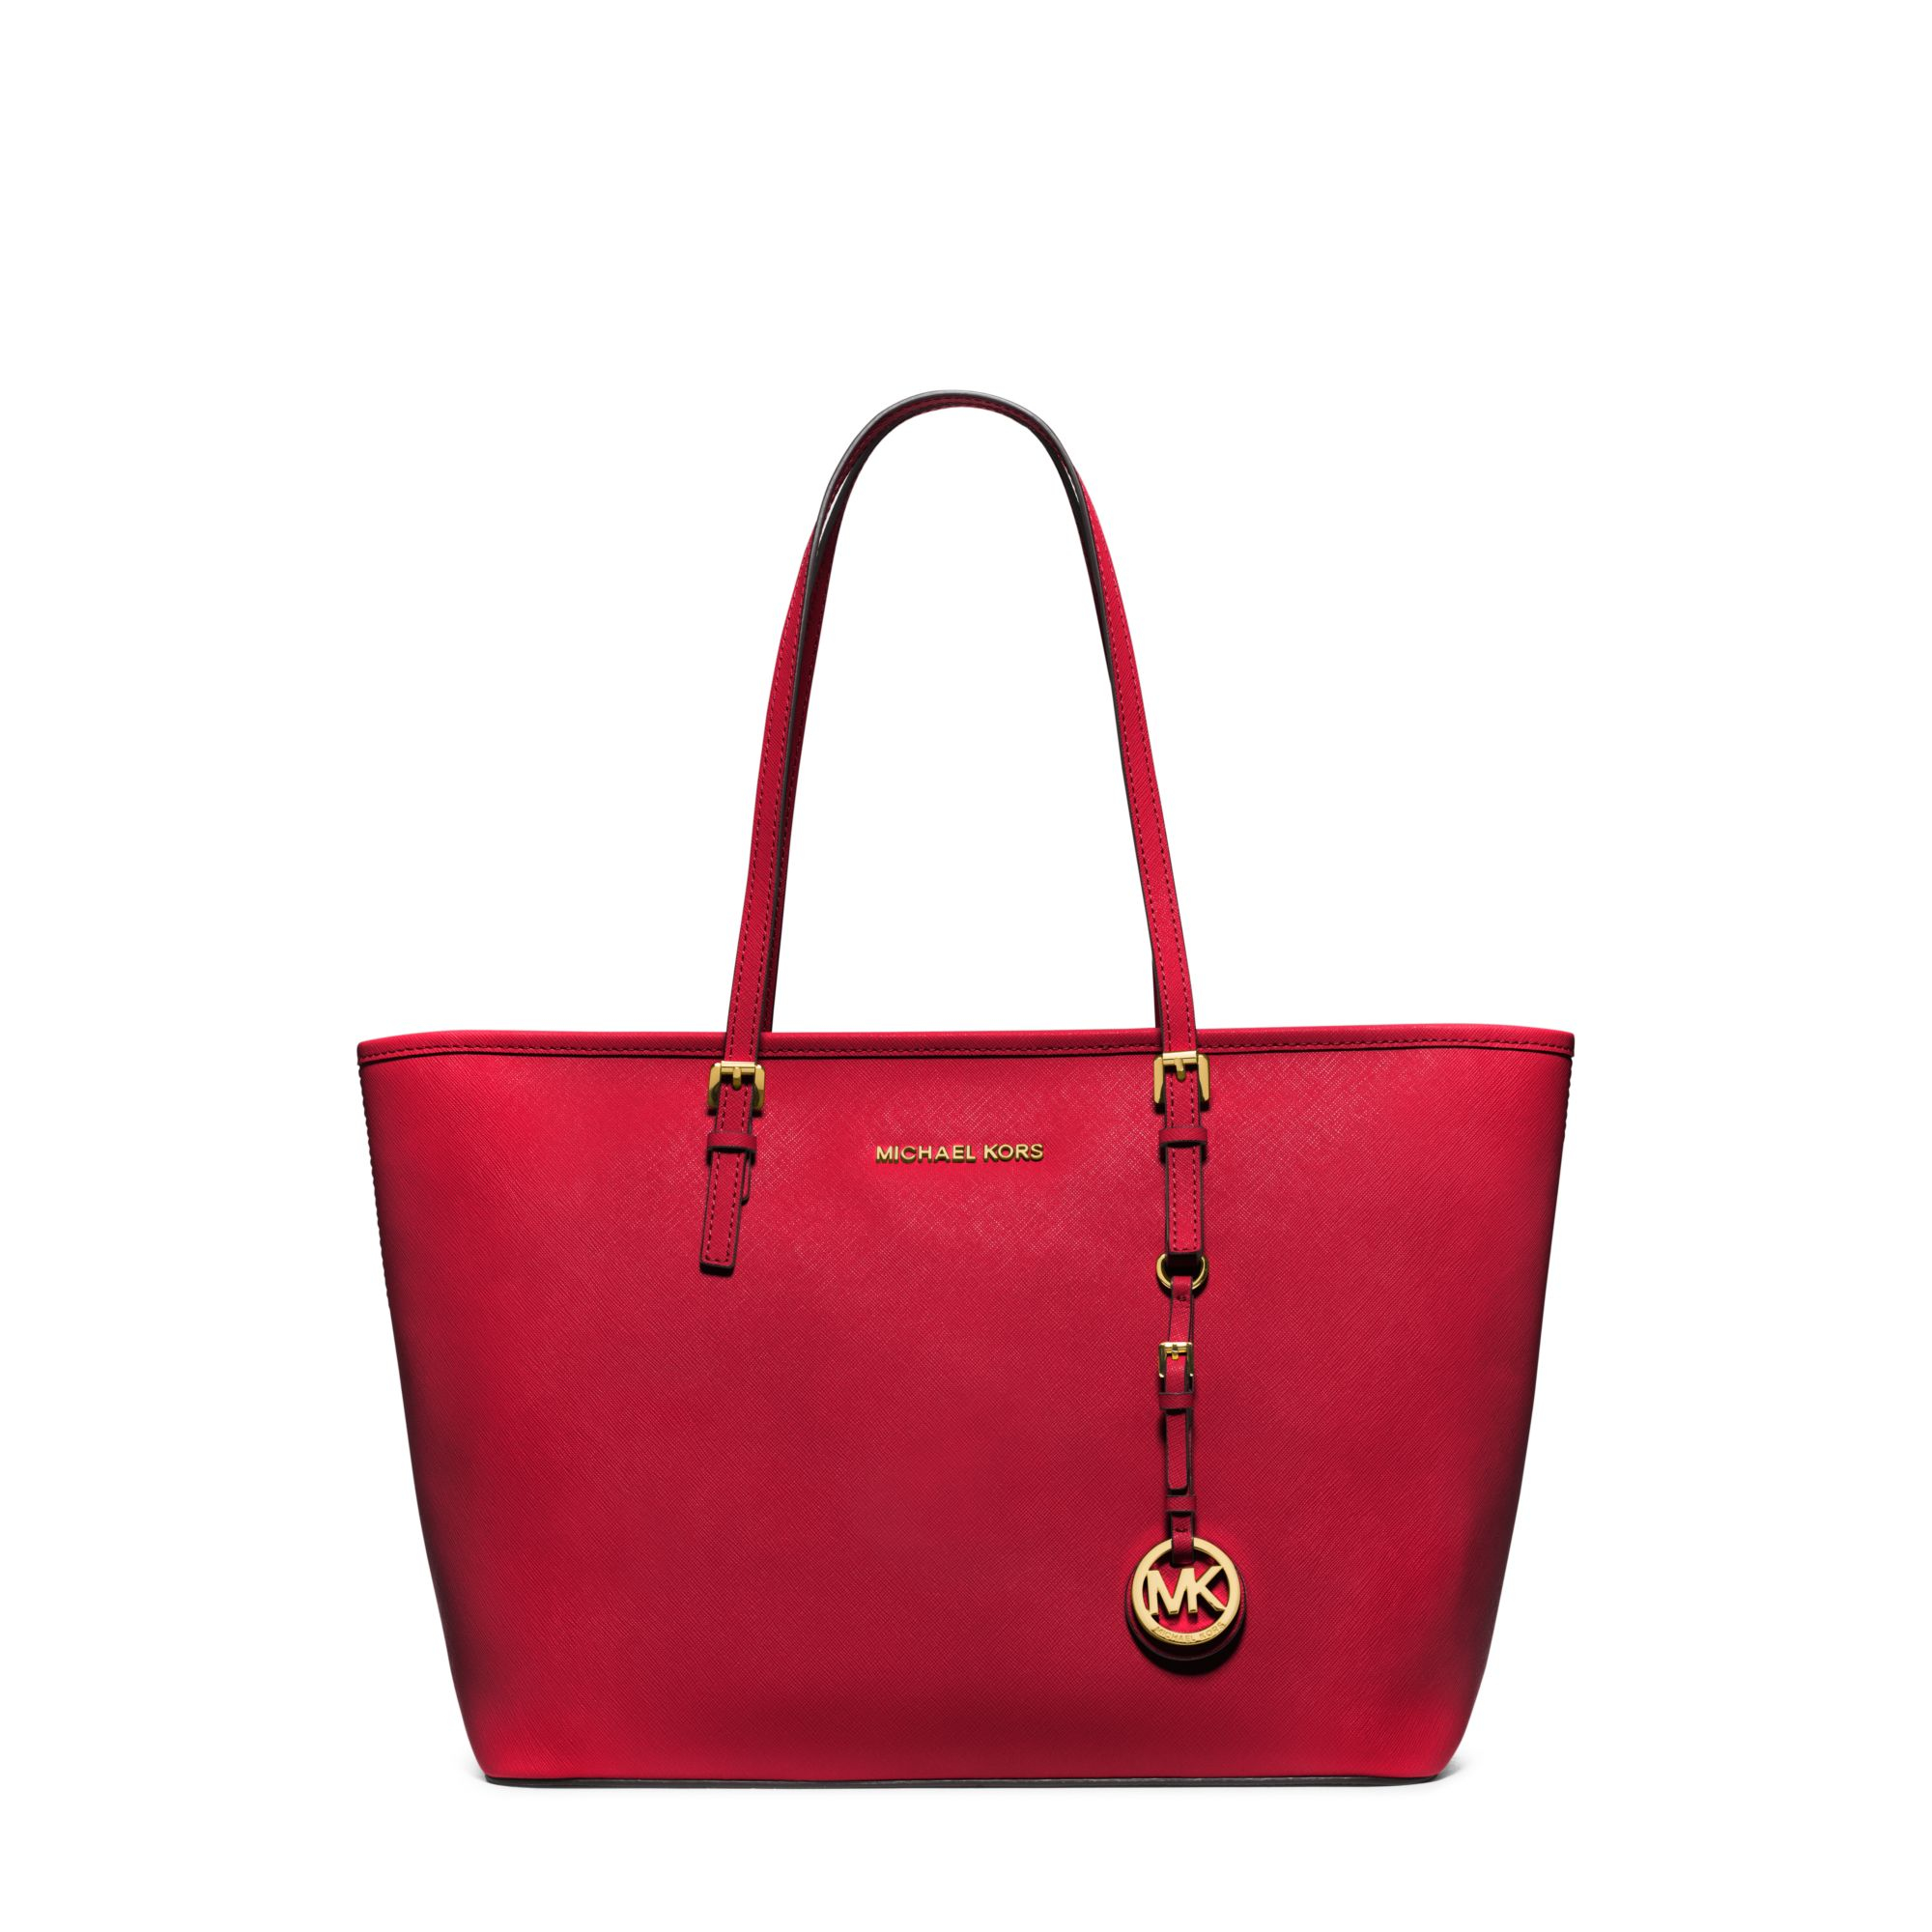 Michael Kors Jet Set Travel Saffiano Leather Top-zip Tote in Red - Lyst 35f3416d6c672